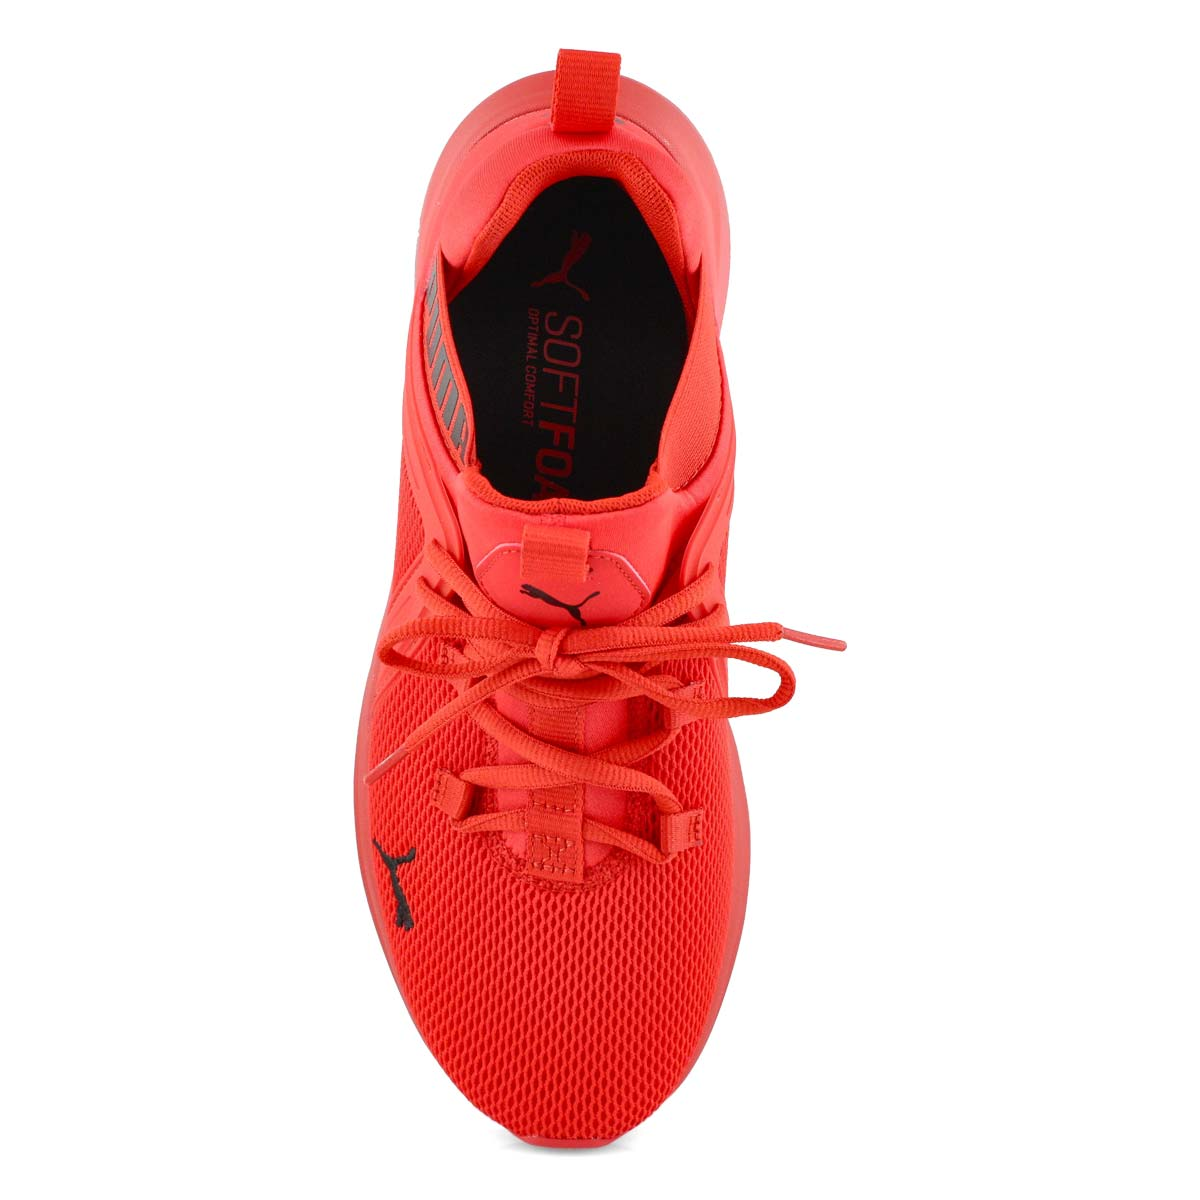 Mns Enzo 2 red fashion sneakers